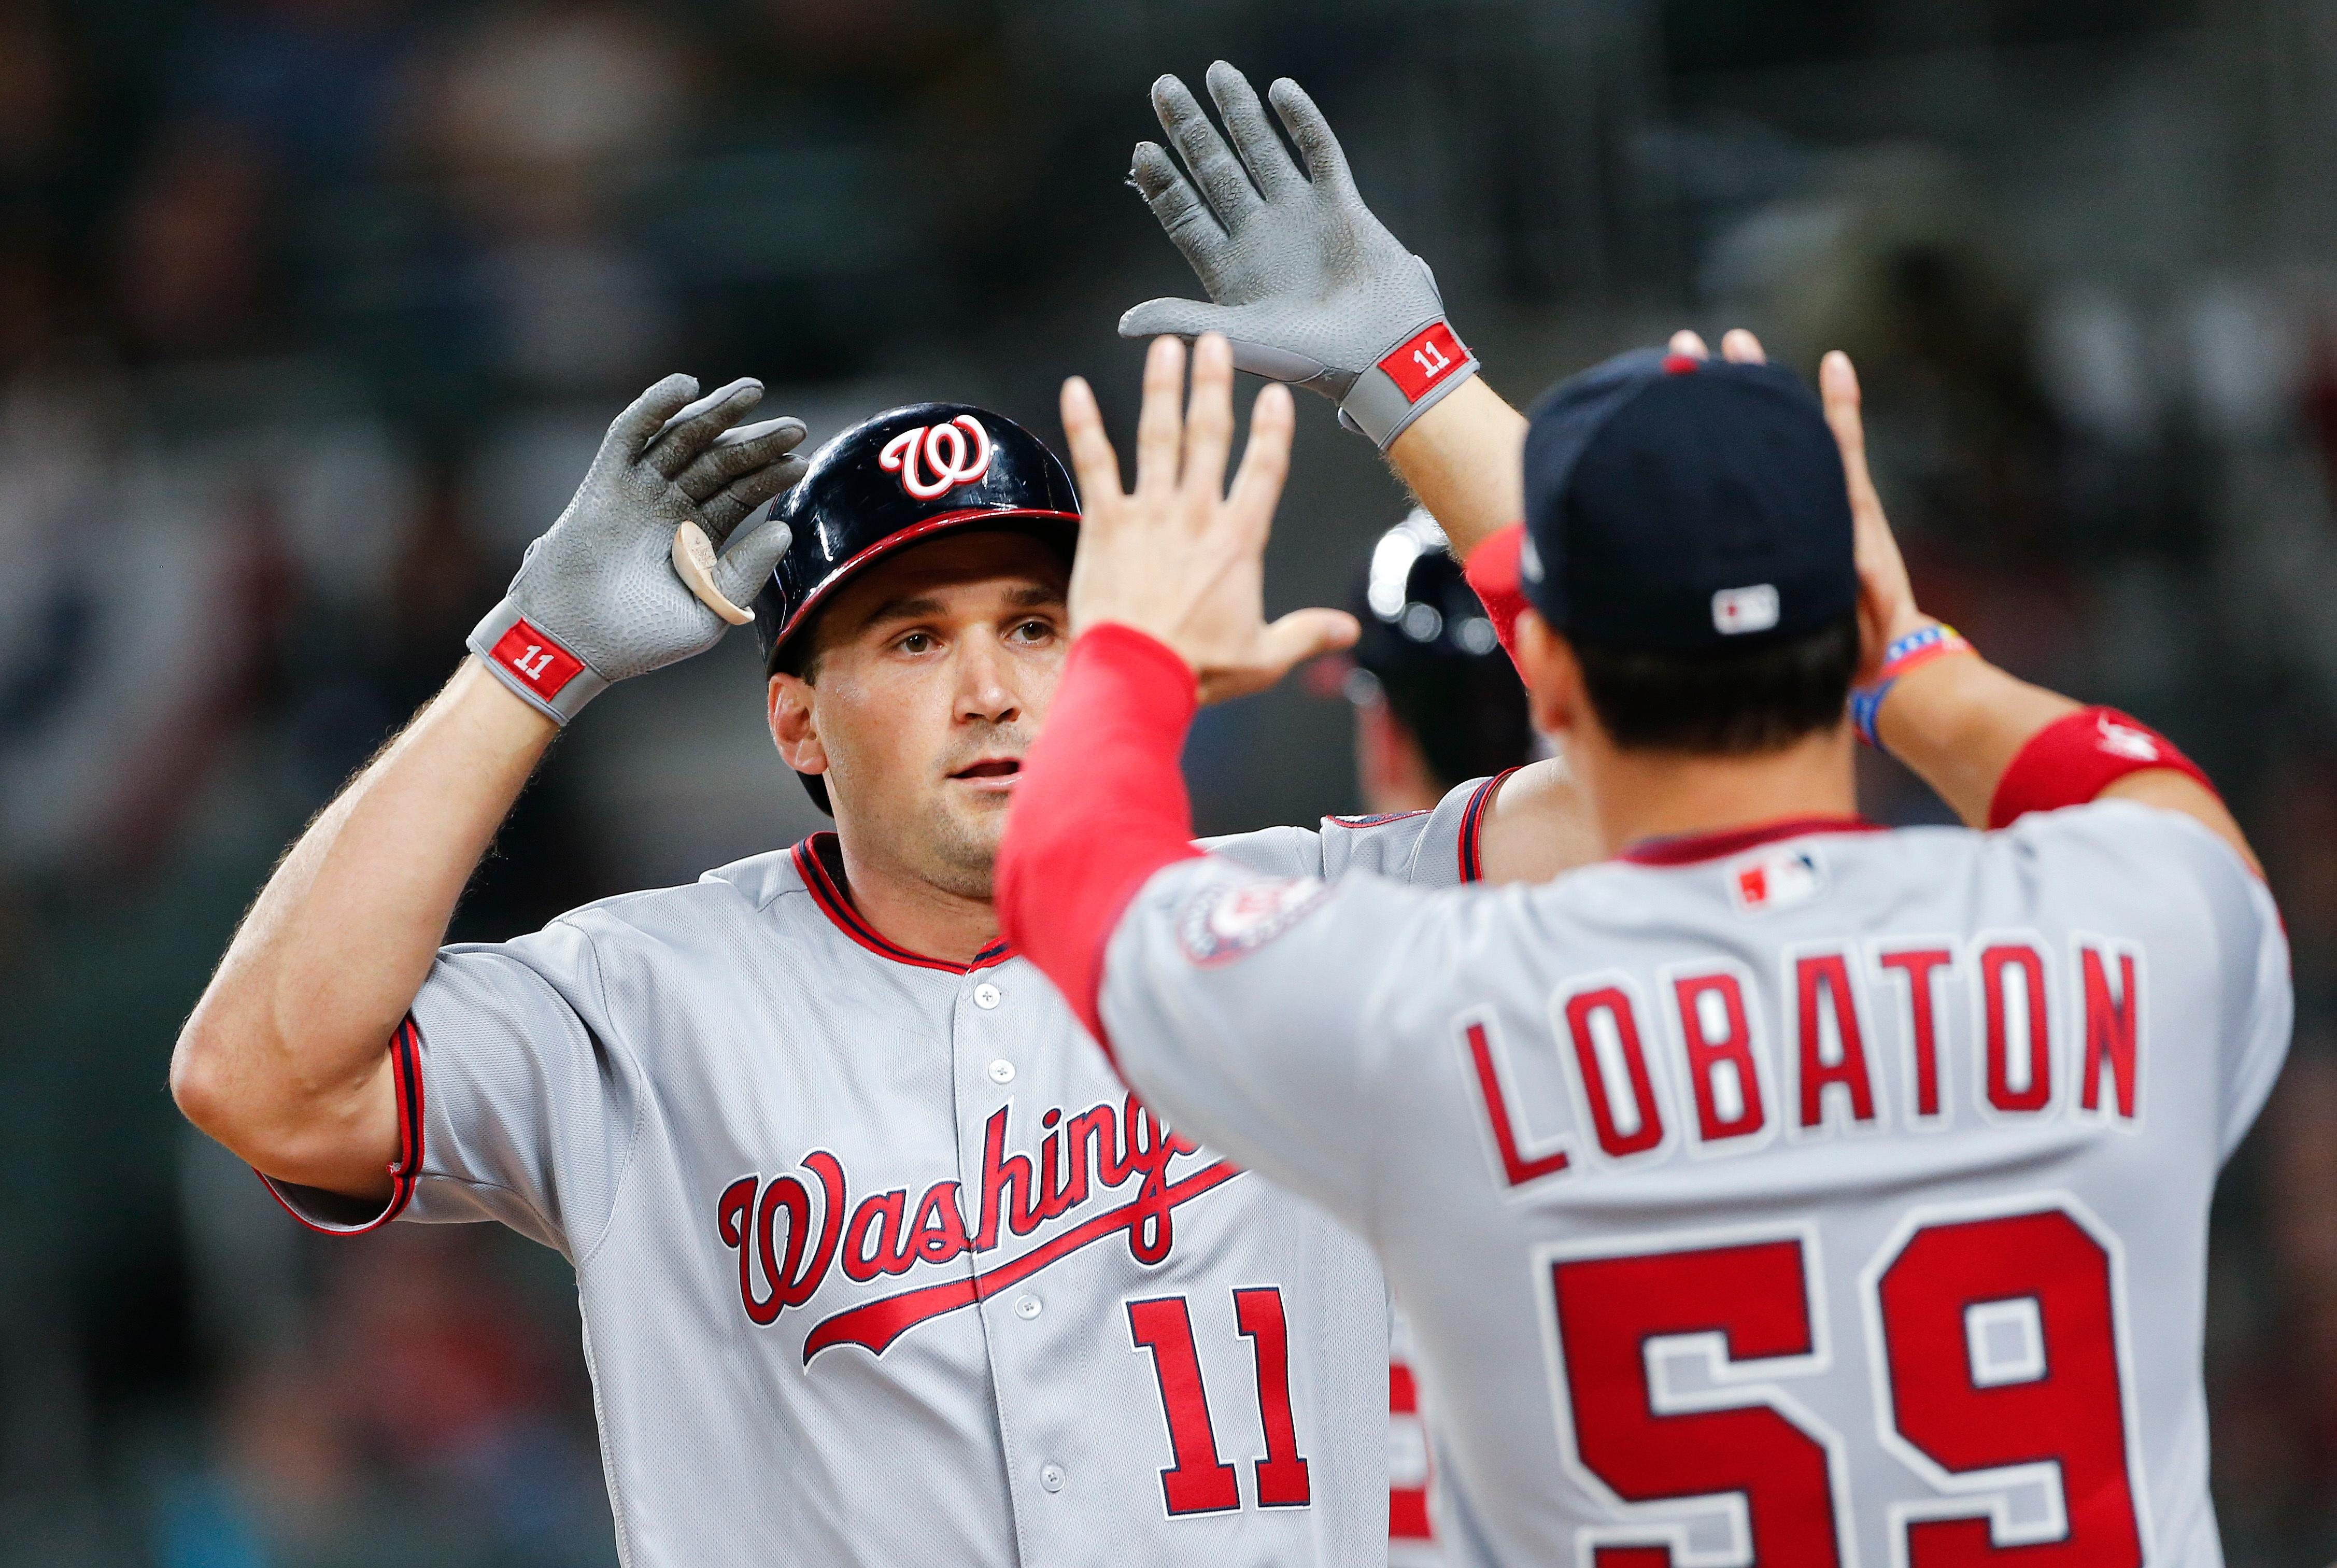 Washington Nationals' Ryan Zimmerman (11) celebrates with Jose Lobaton (59) after hitting a two-run home run during the sixth inning of a baseball game against the Atlanta Braves on Thursday, April 20, 2017, in Atlanta. (AP Photo/John Bazemore)